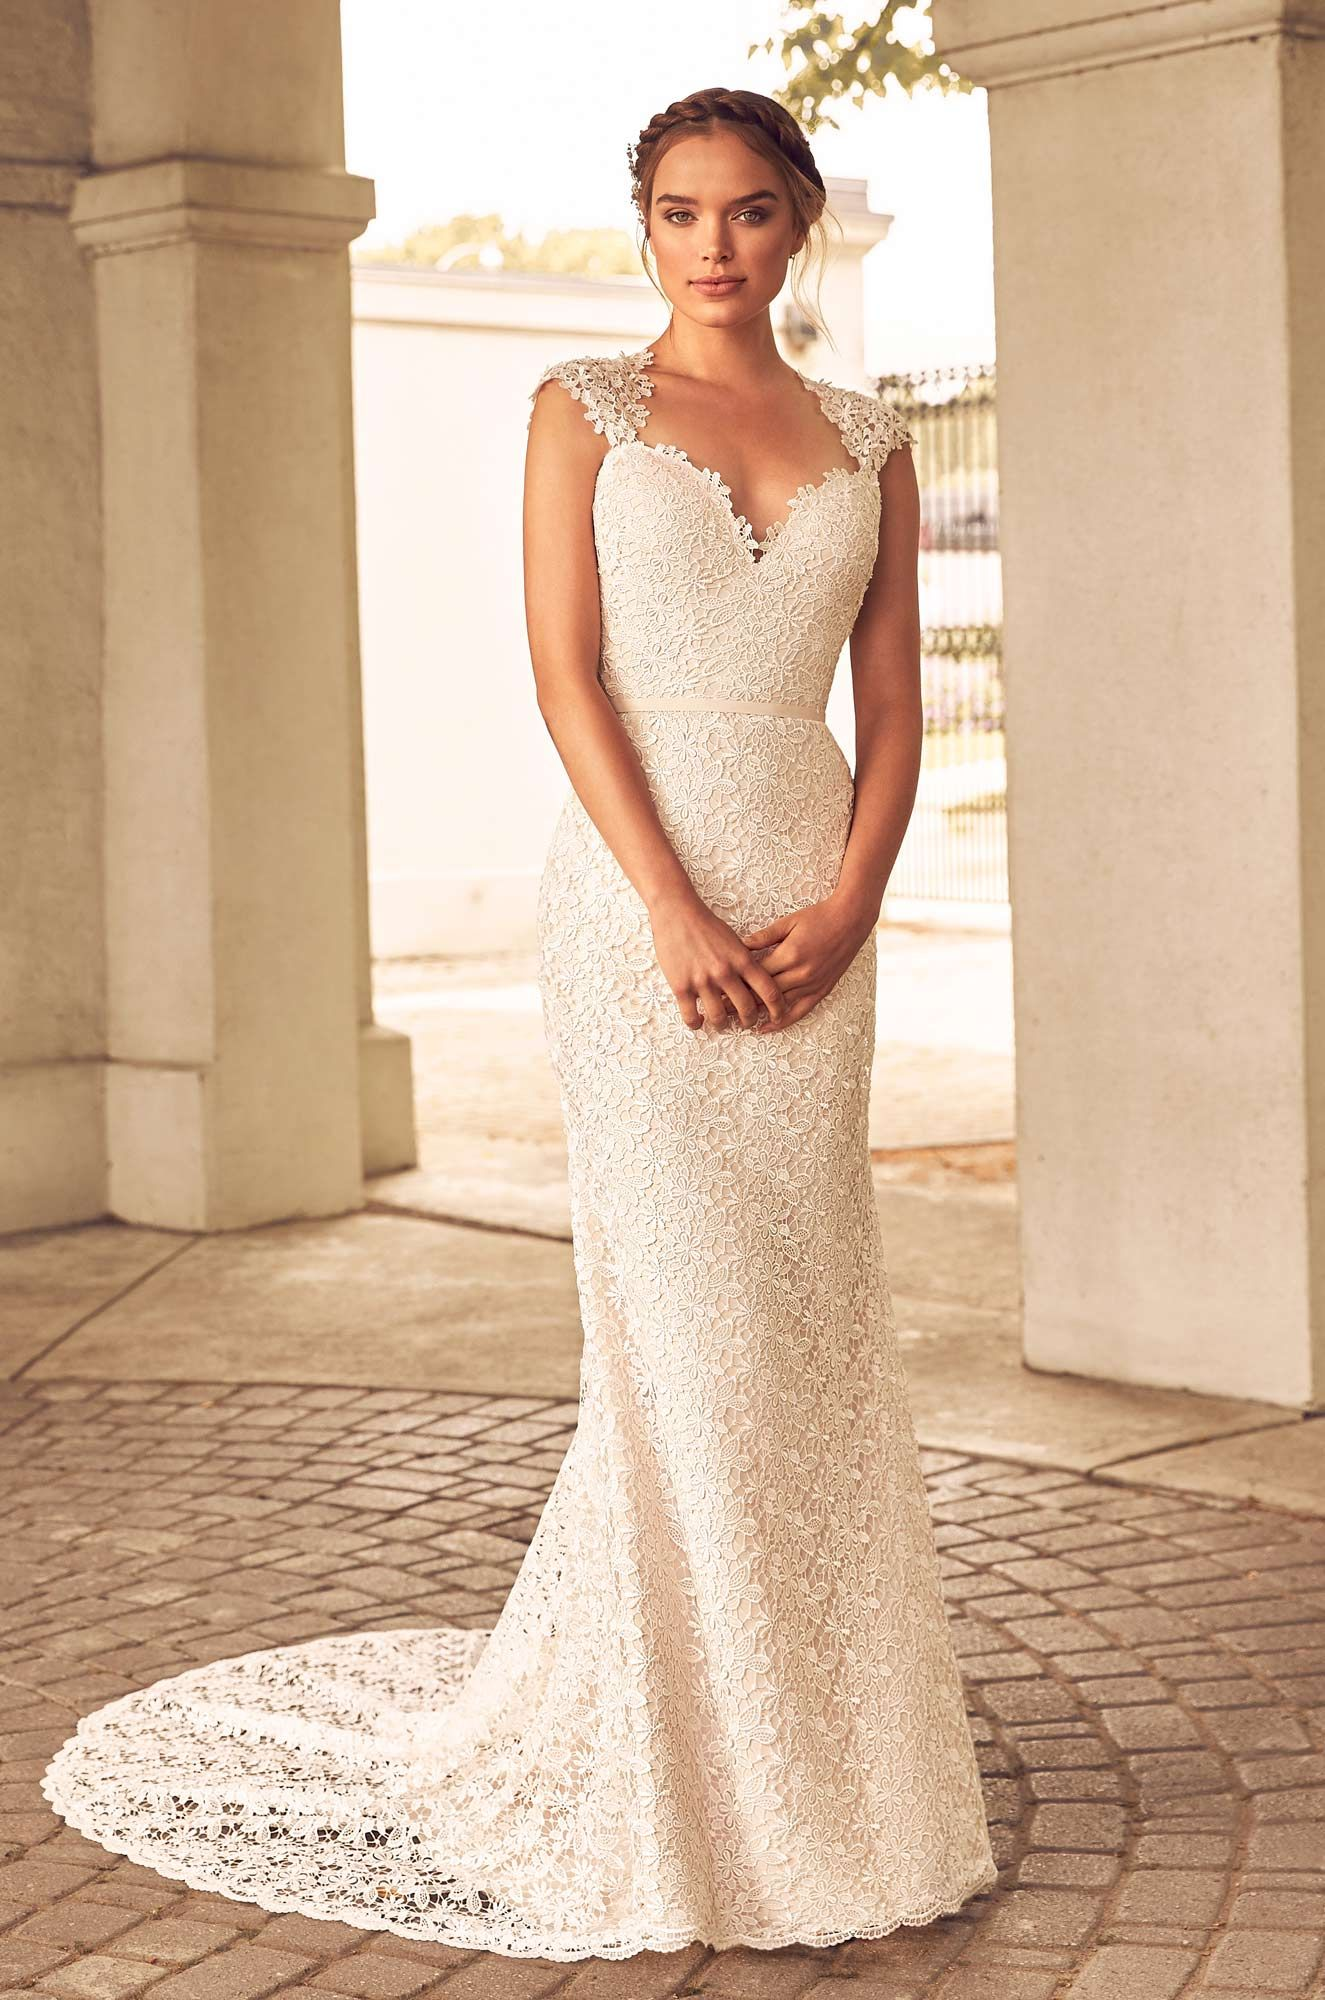 Floral Lace Wedding Dress - Style #4784 | Paloma blanca, Lace ...